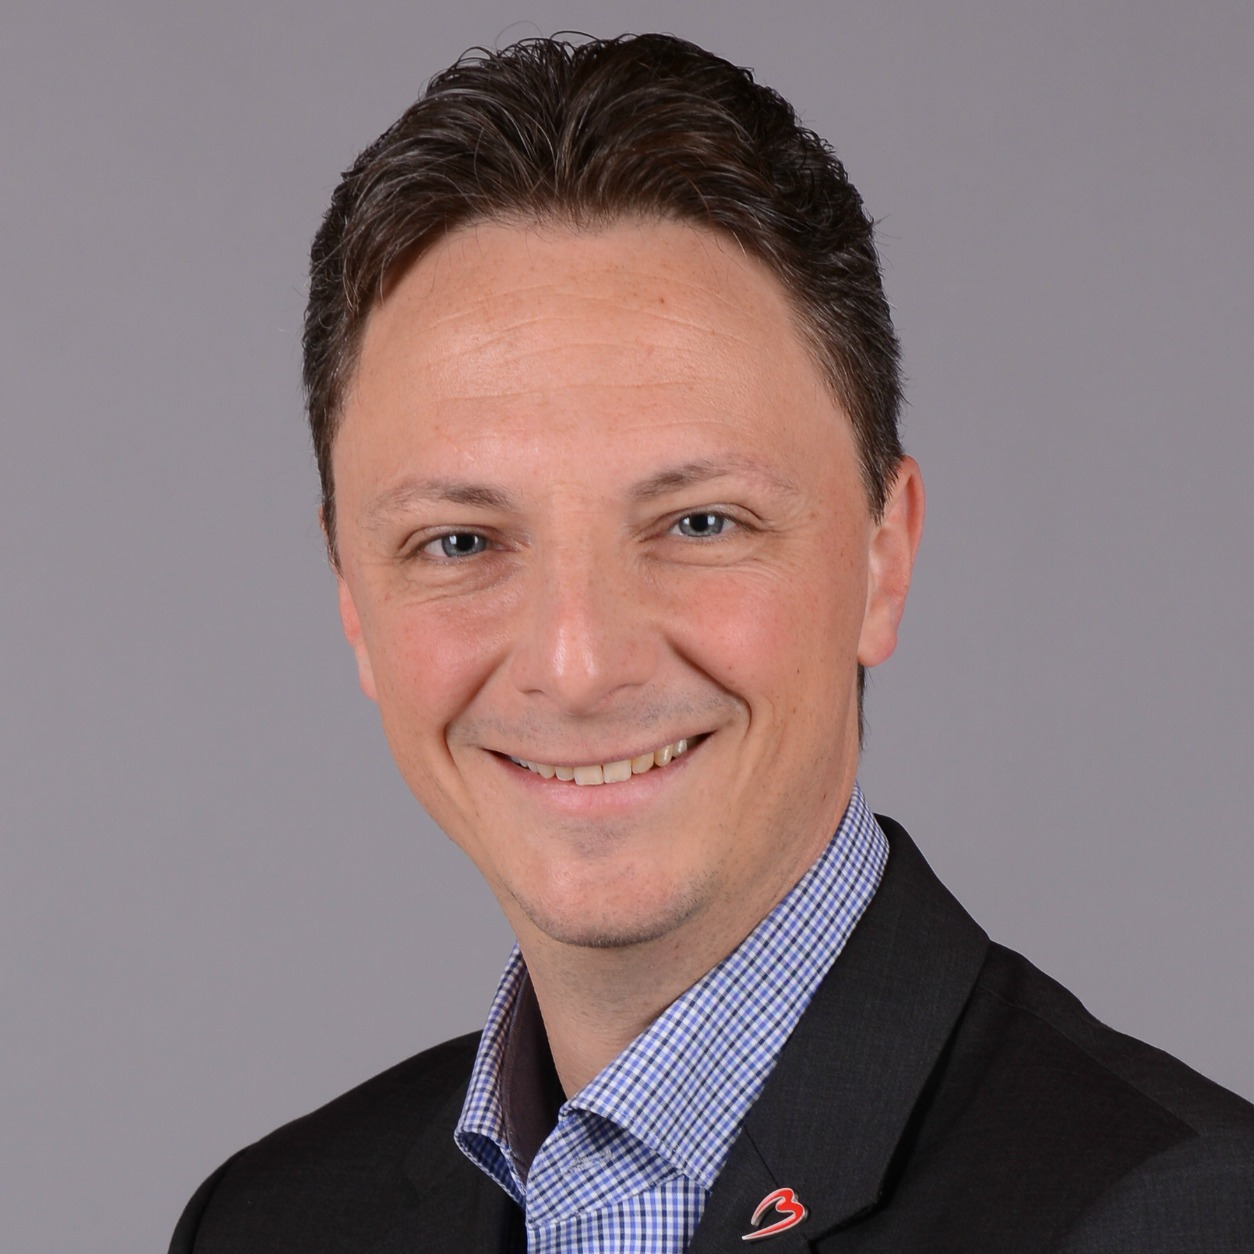 Nathan De Valck, Brussels Airport Company